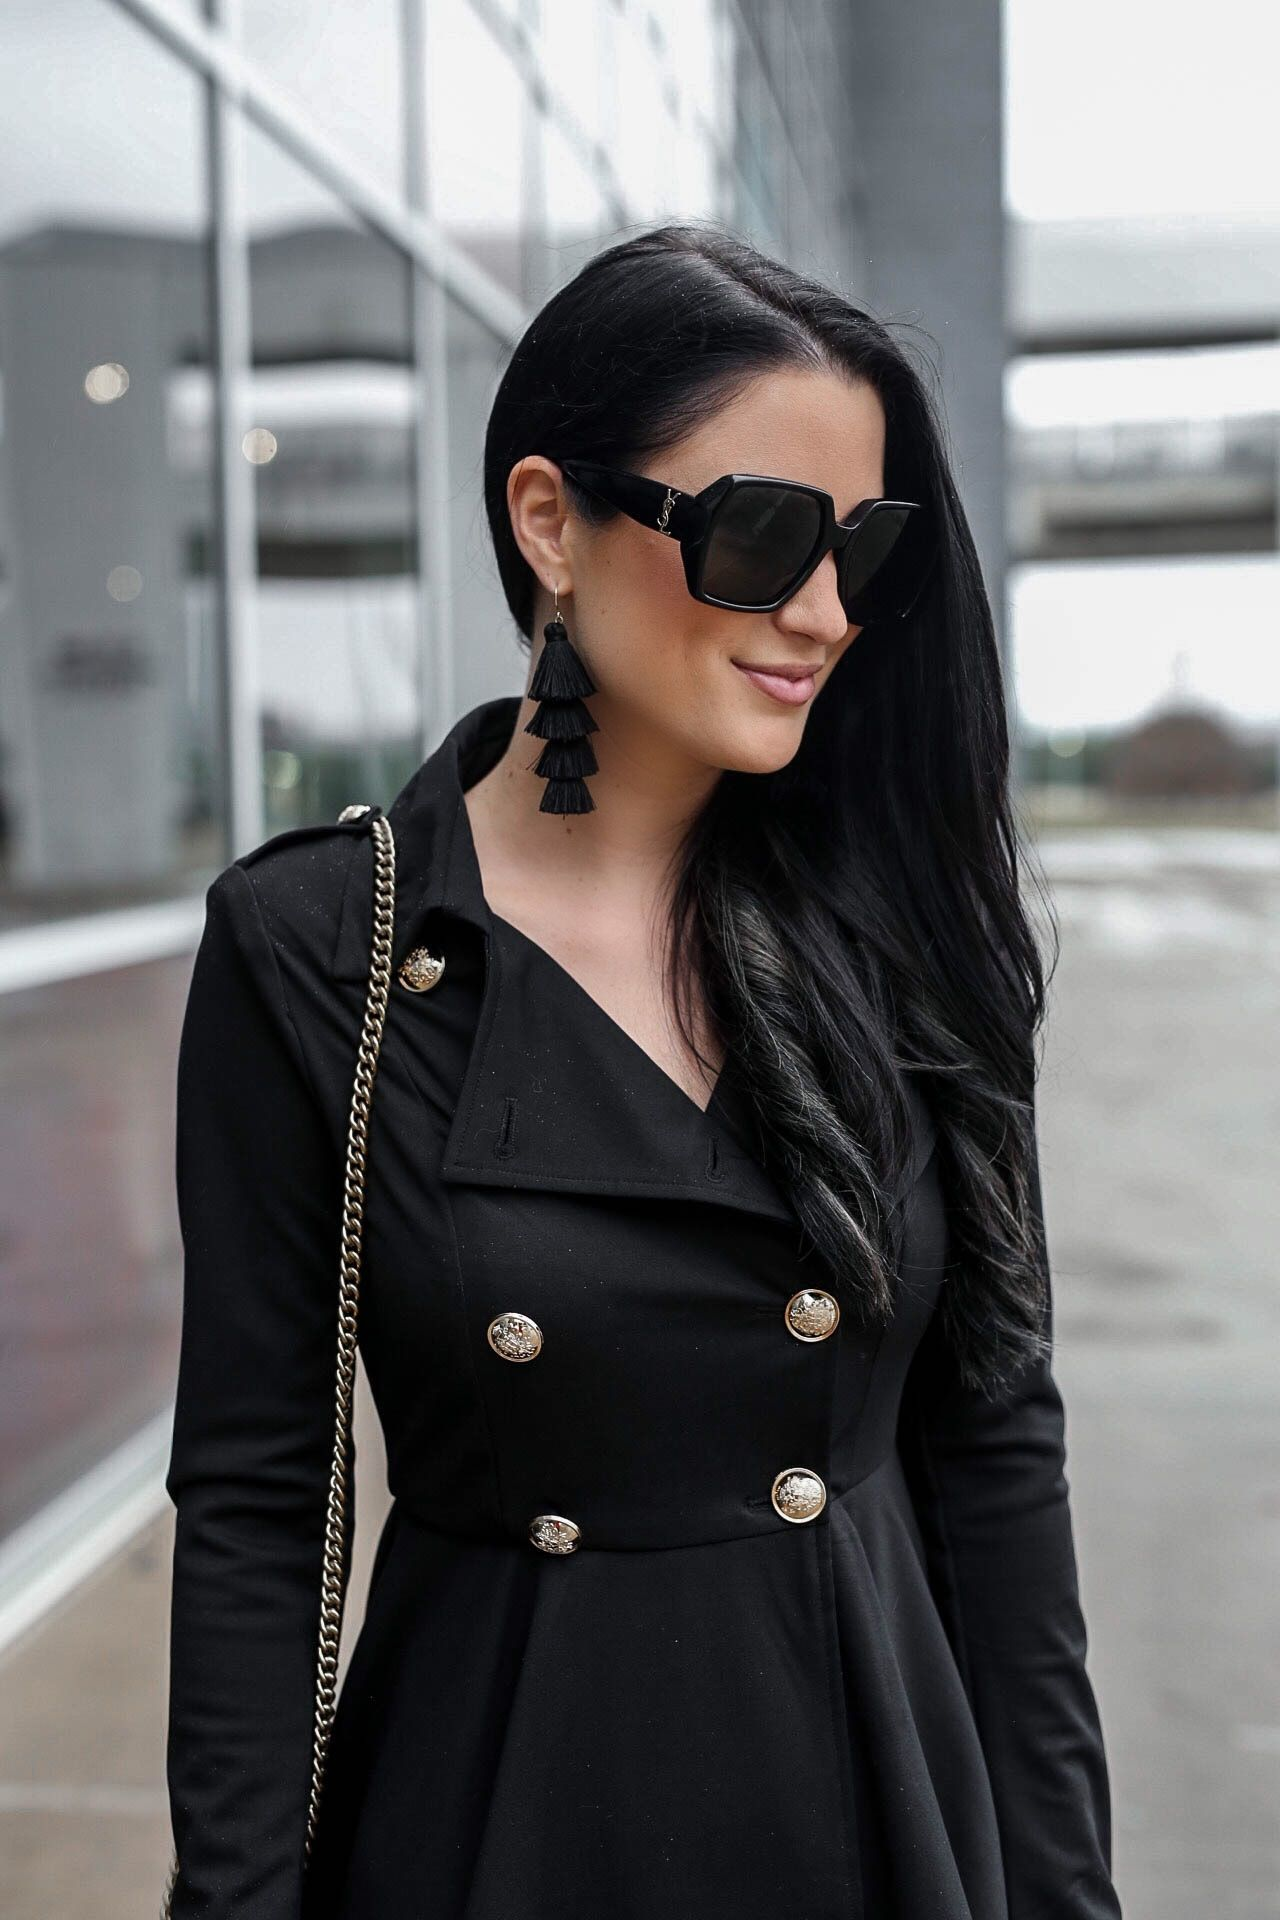 Tips On How To Wear A Black Trench Coat Dress Dressed To Kill Trench Coats Women Trench Coat Dress Trench Coat Black [ 1920 x 1280 Pixel ]